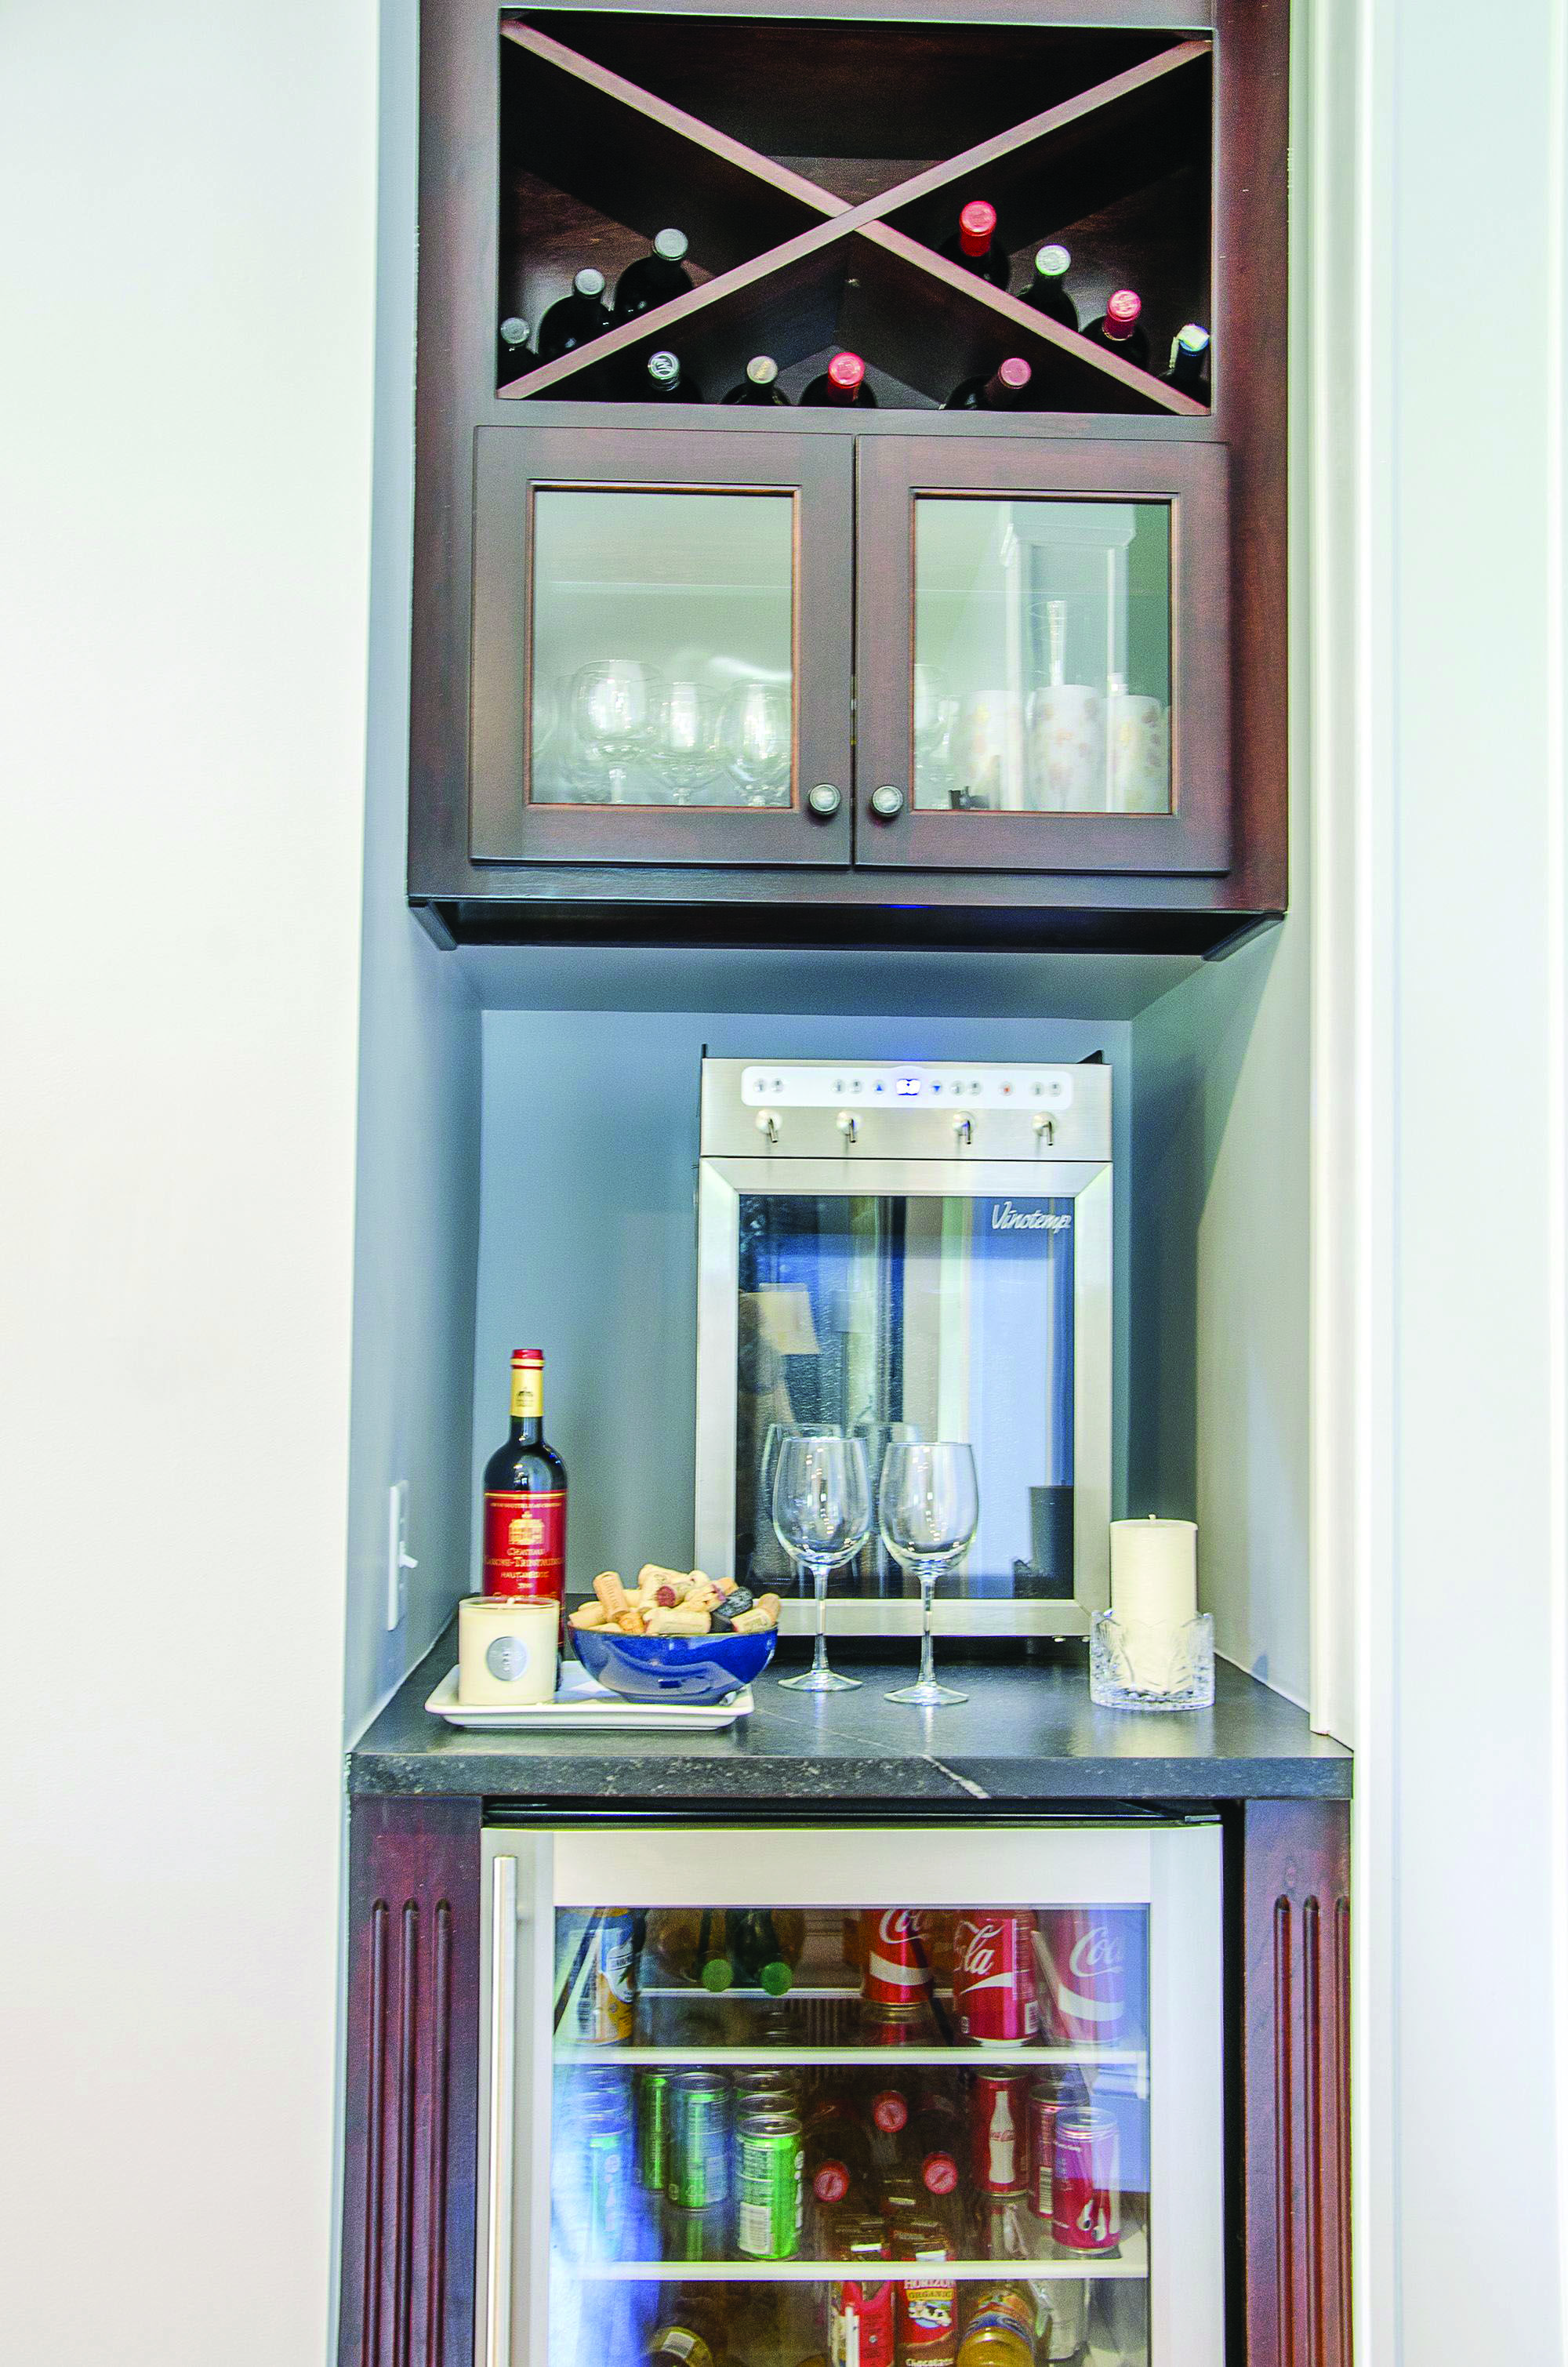 Small Property Bar Concepts And Space Savvy Layouts Dova Home Bars For Home Mini Bar Kitchen Bar